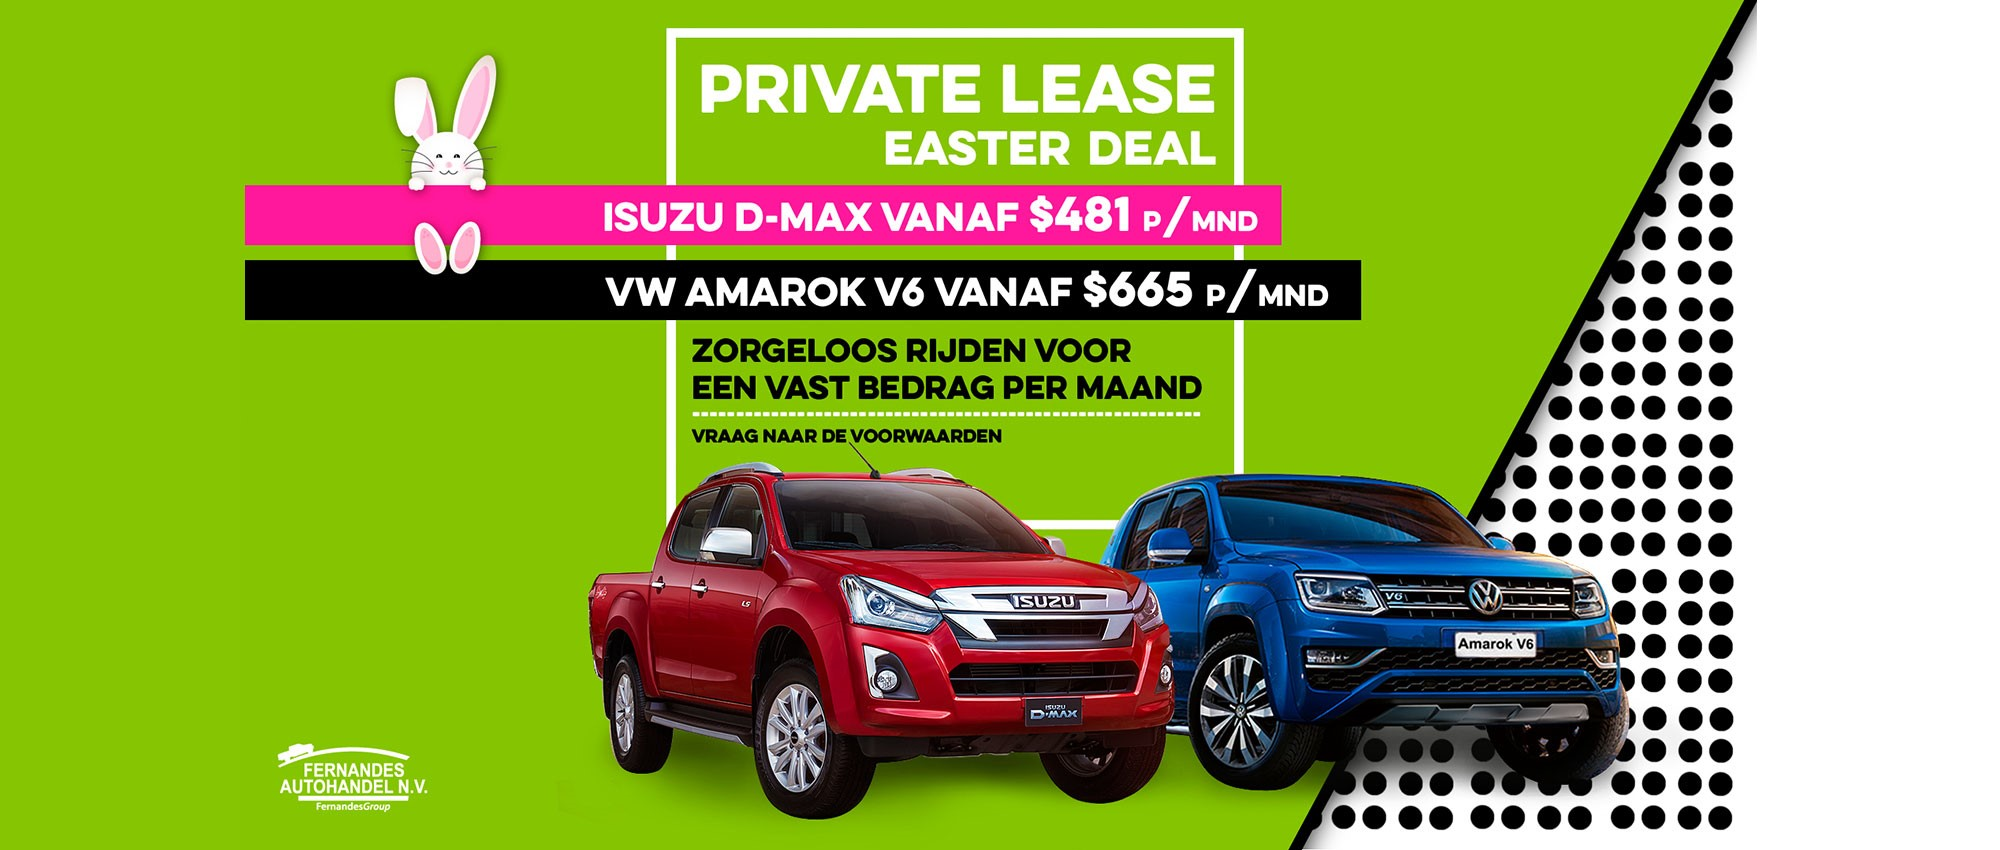 Private Lease Easter Deal